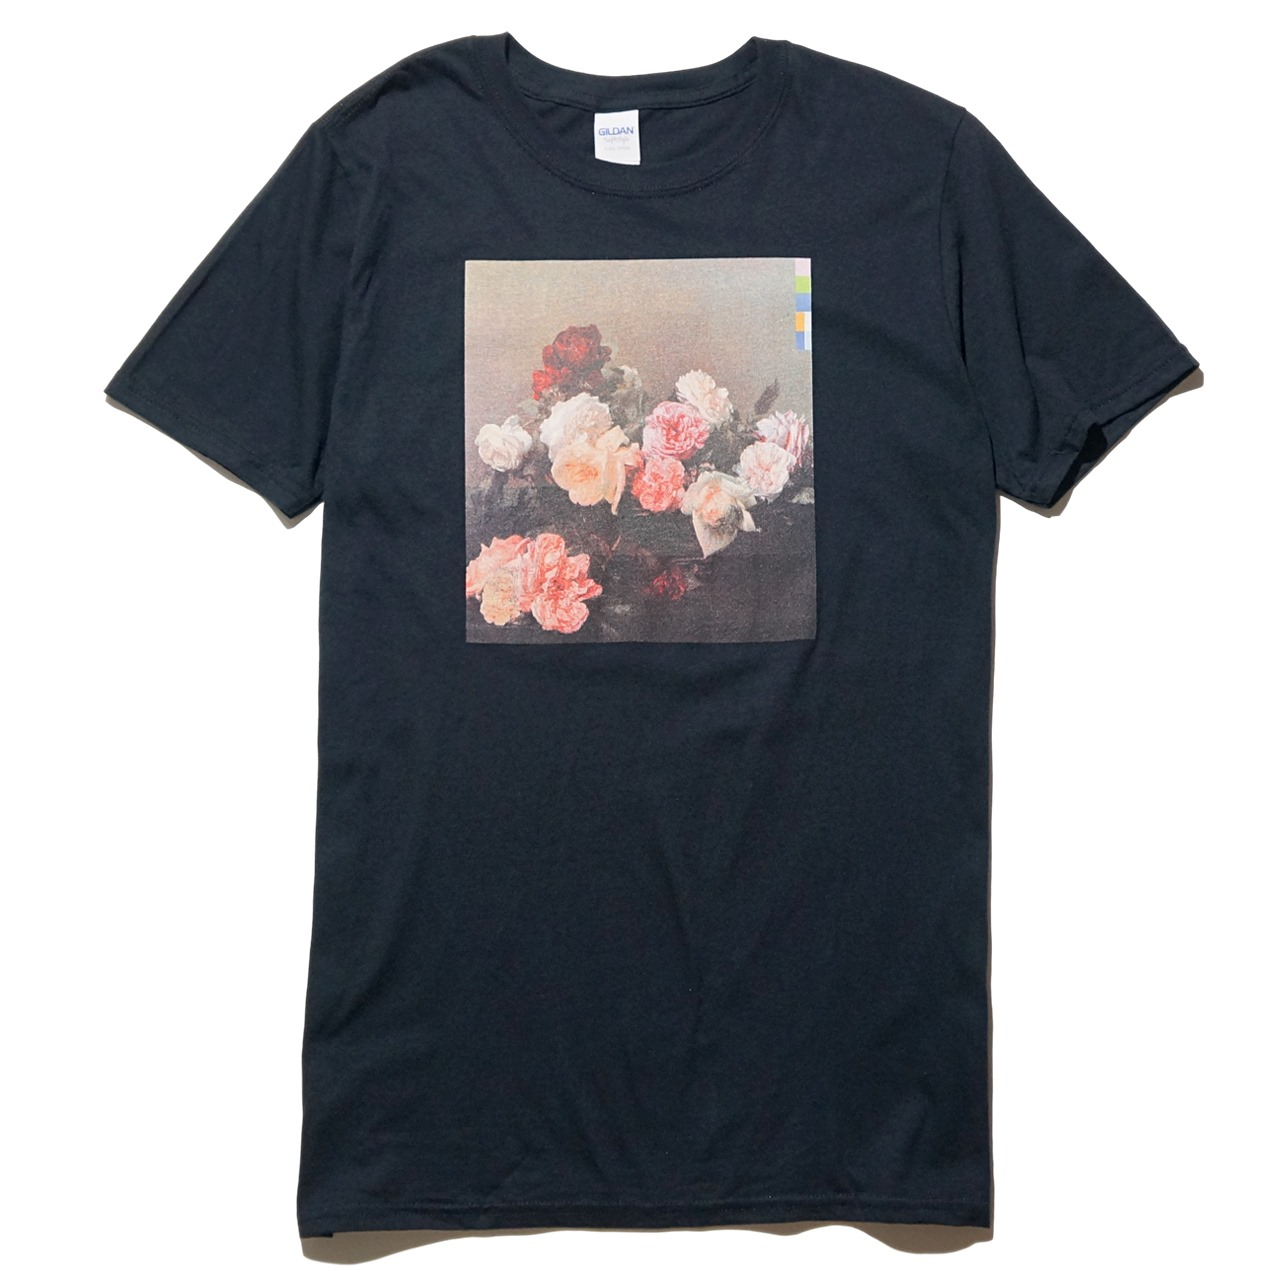 NEW ORDER Tシャツ 公式/権力の美学 Power Corruption and Lies-Black